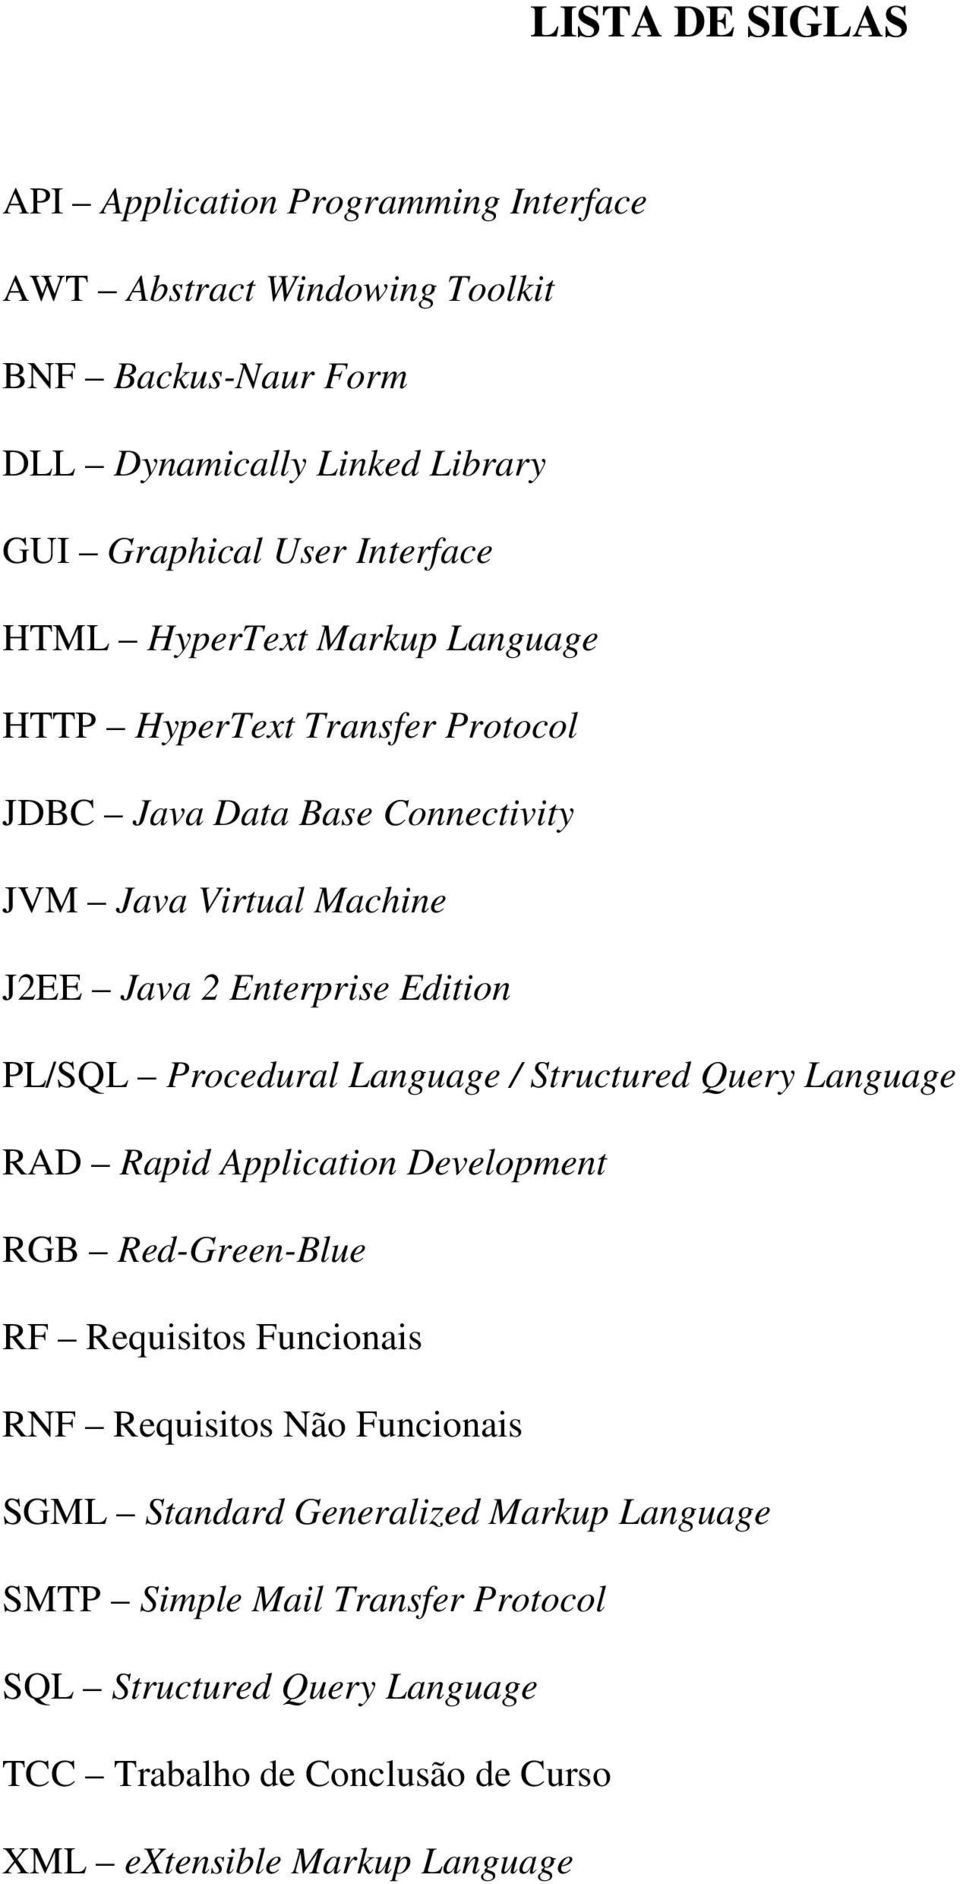 PL/SQL Procedural Language / Structured Query Language RAD Rapid Application Development RGB Red-Green-Blue RF Requisitos Funcionais RNF Requisitos Não Funcionais